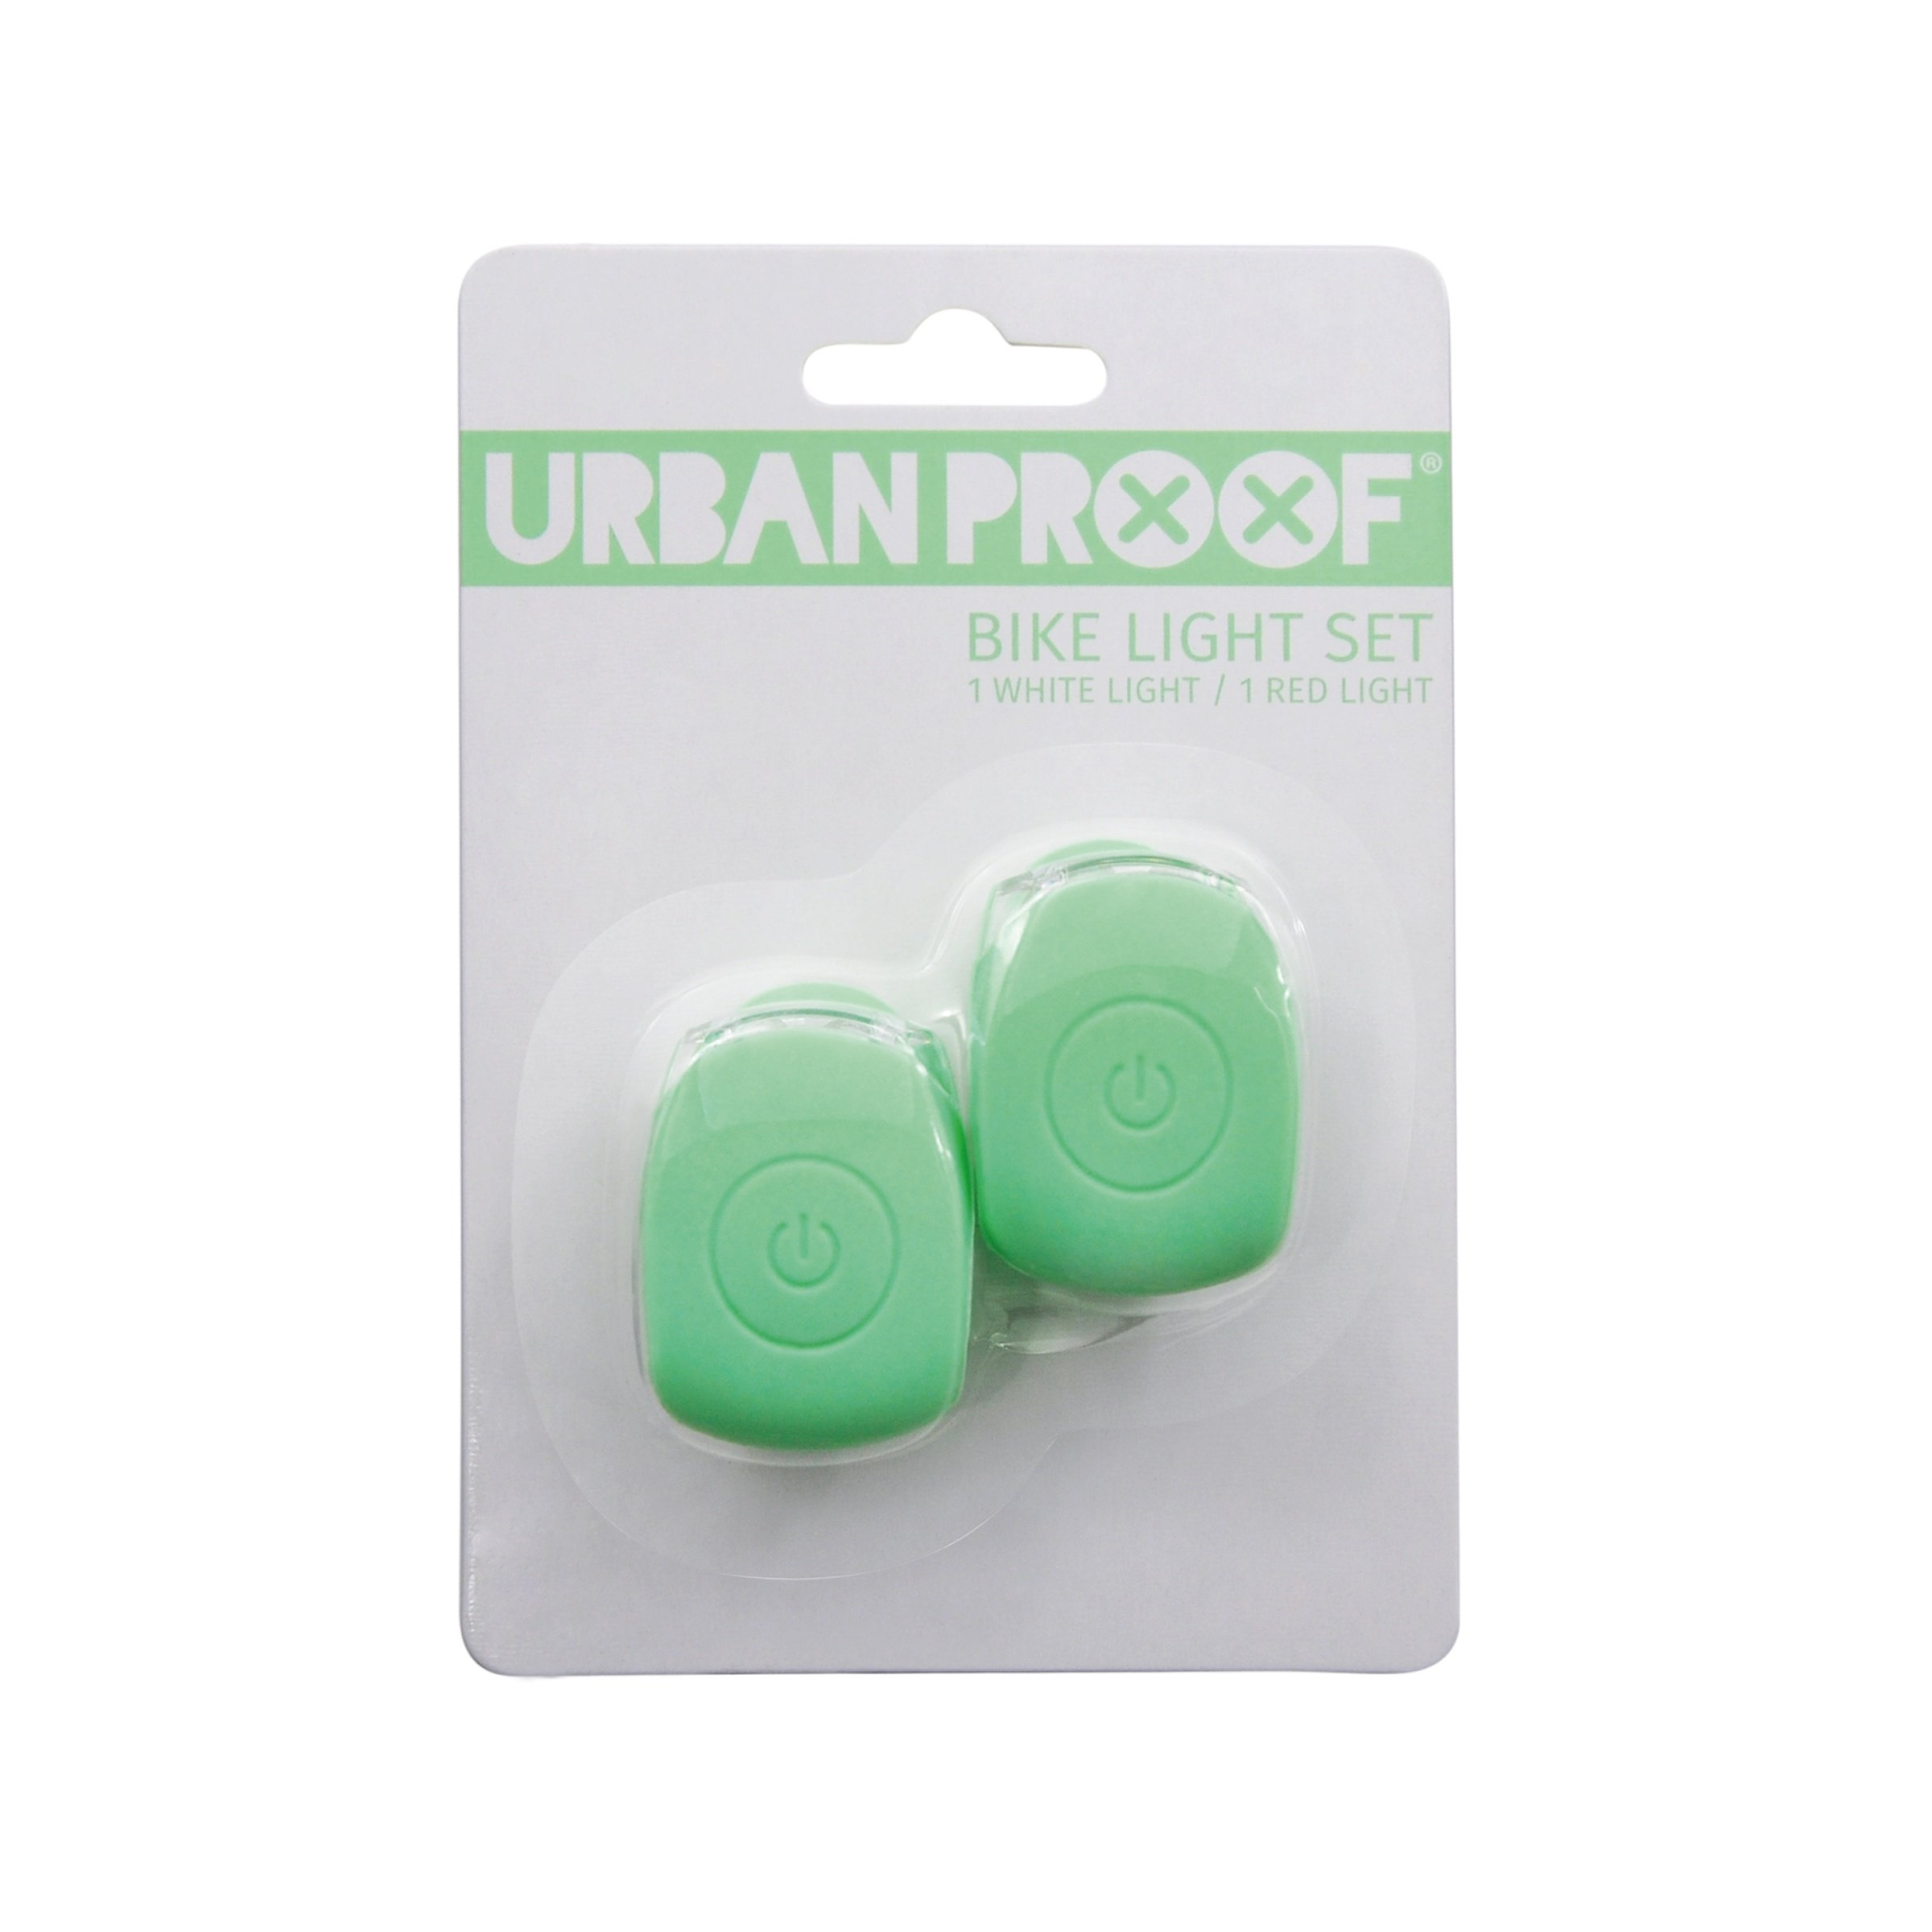 Urban Proof Silicon Lights Pastel Green | City-cykler